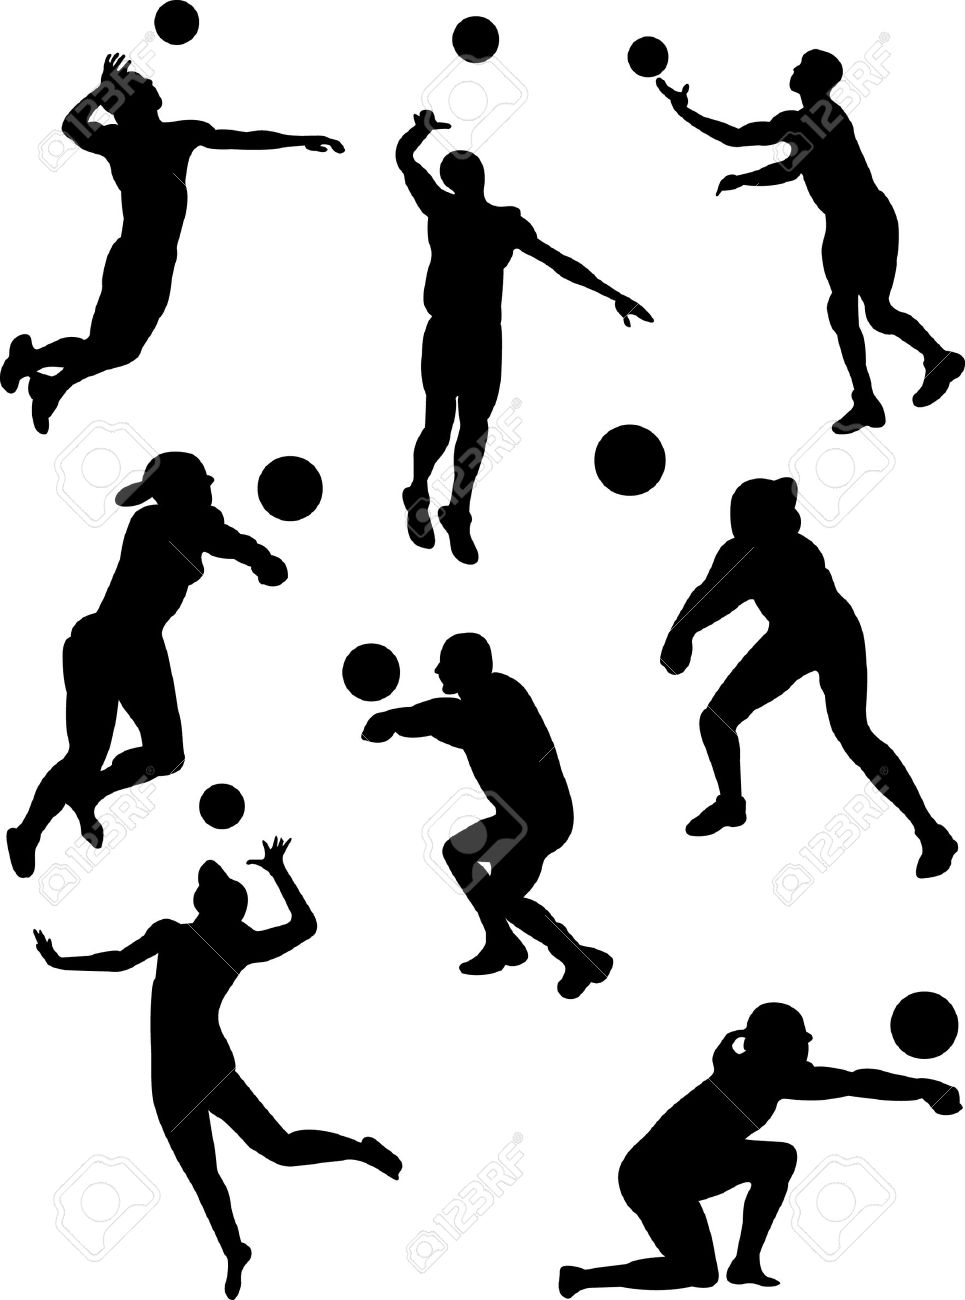 Volleyball Silhouettes | Free download best Volleyball ...